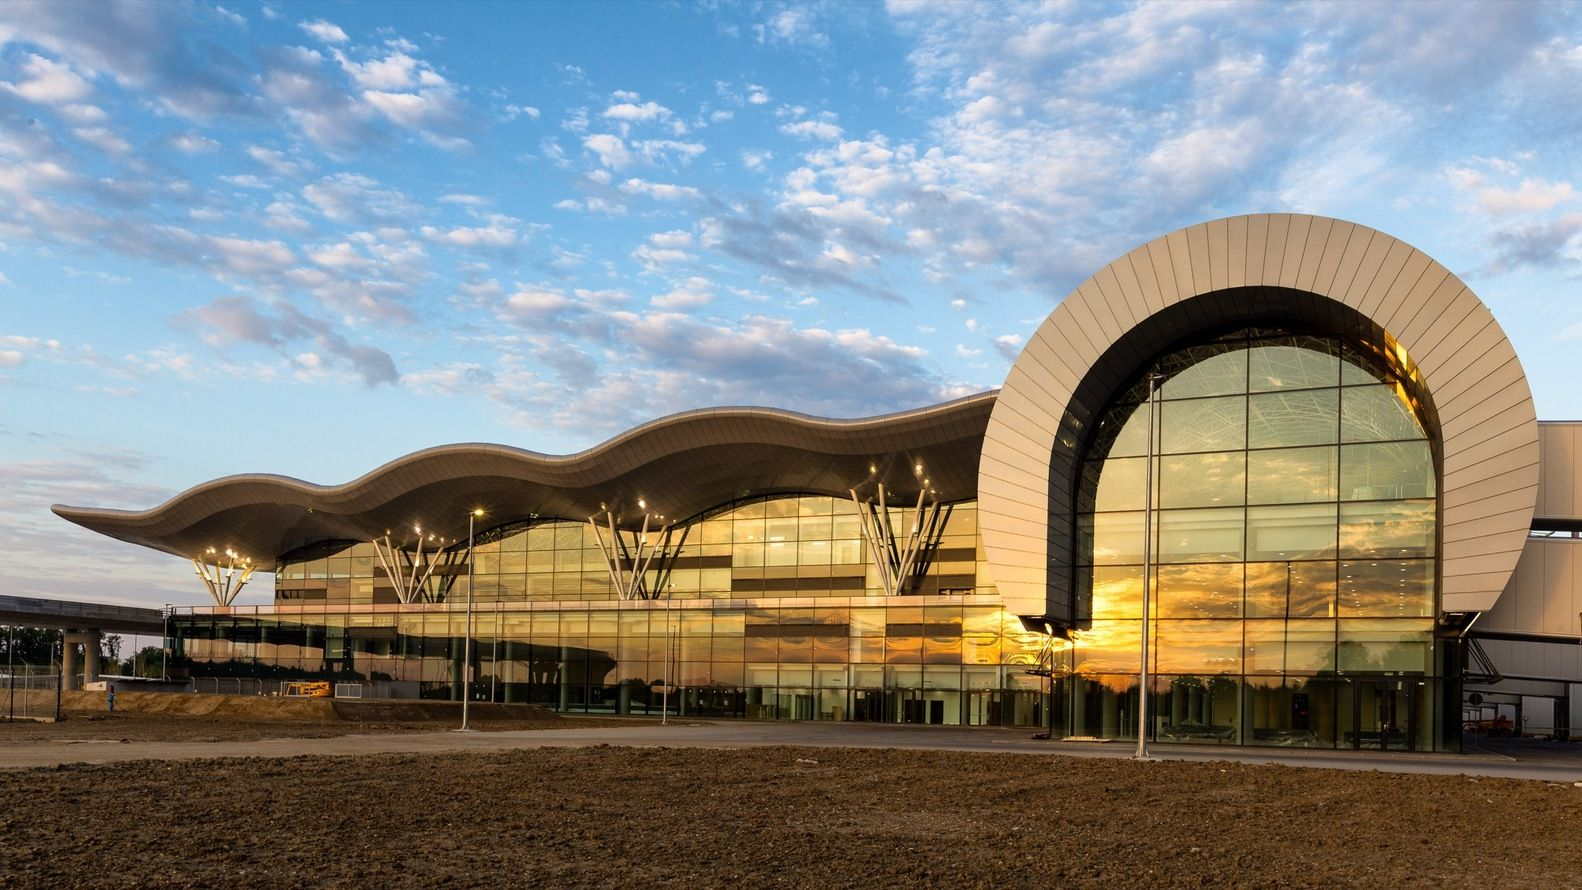 Gallery Of Zagreb Airport Kincl Neidhardt Institut Igh 16 Zagreb Airport Airport City